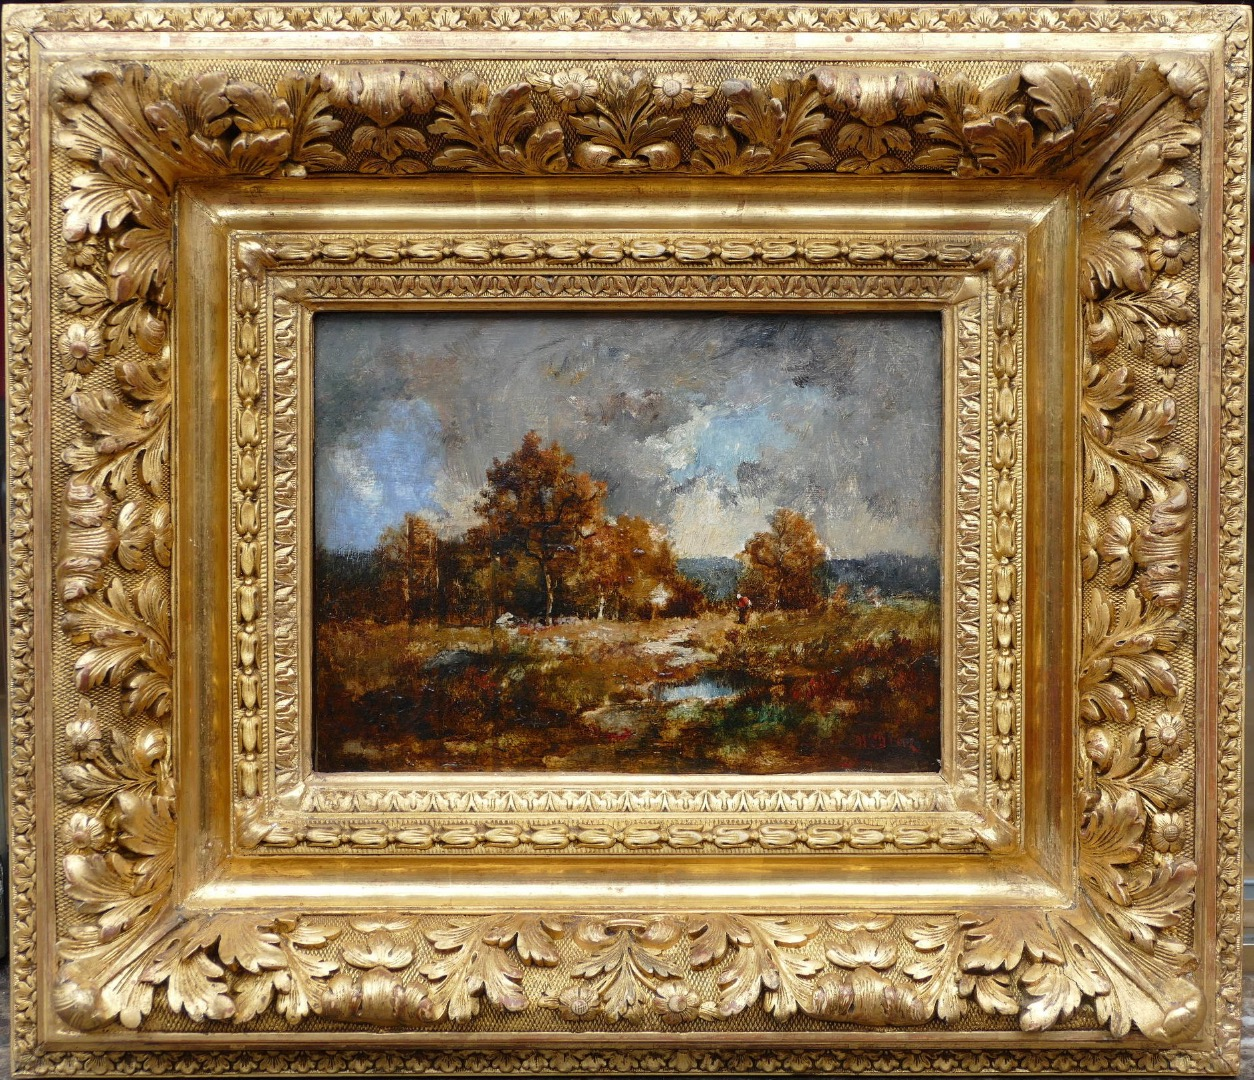 Diaz De La Pena Narcisse French Painting XIXth Century Oil On Panel Signed Barbizon School